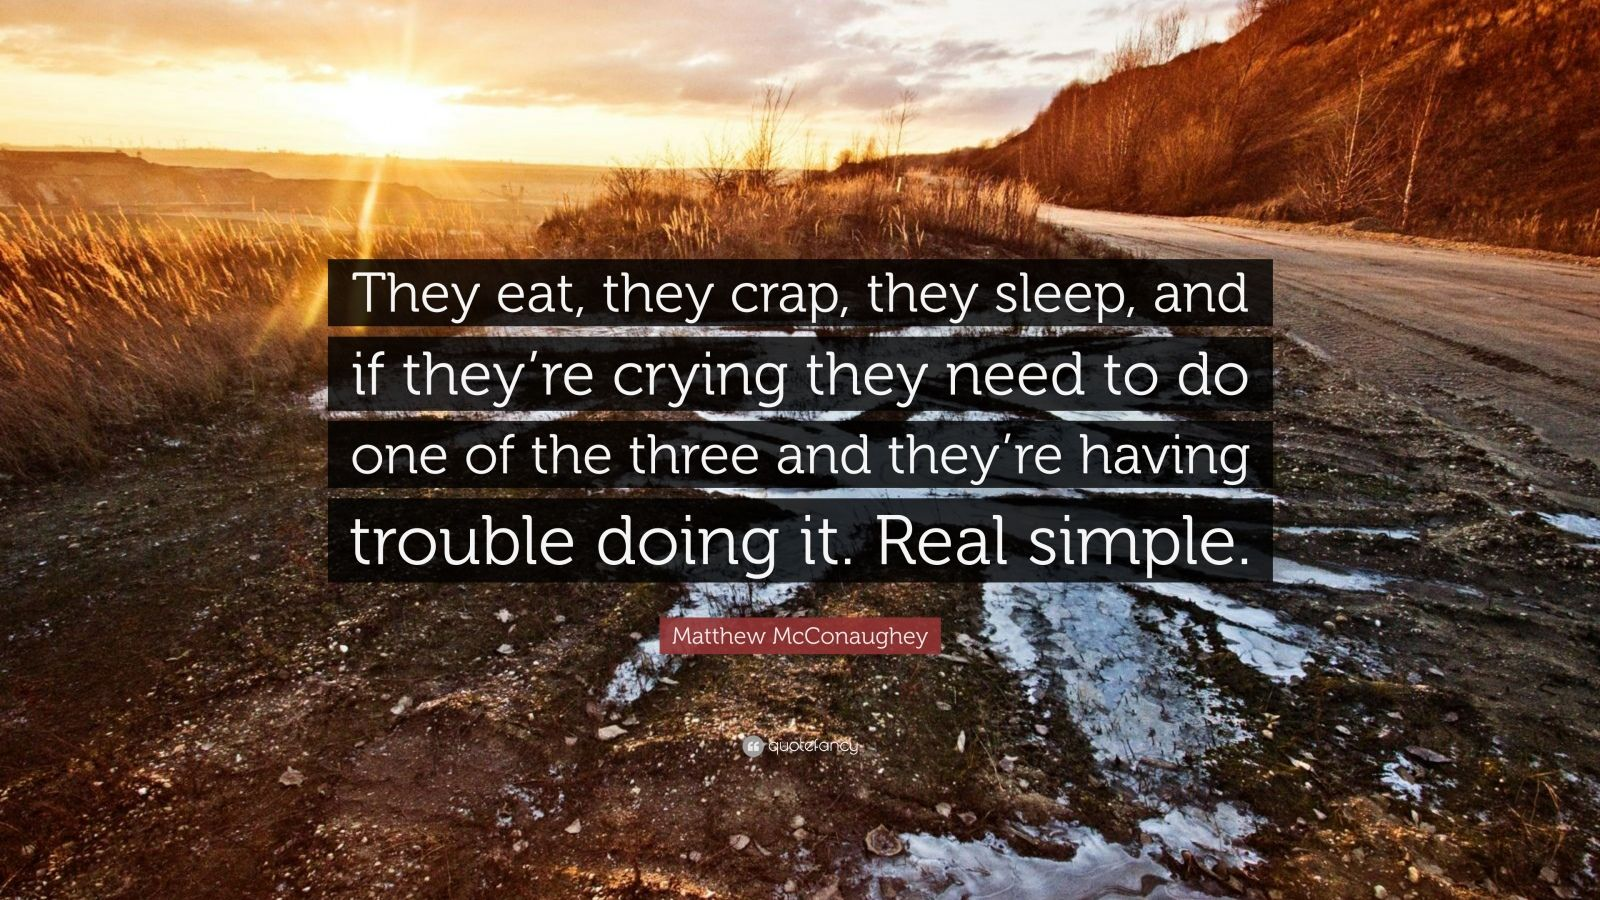 "Matthew McConaughey Quote: ""They eat, they crap, they sleep, and if they're crying they need to do one of the three and they're having trouble doing it. Real simple."""